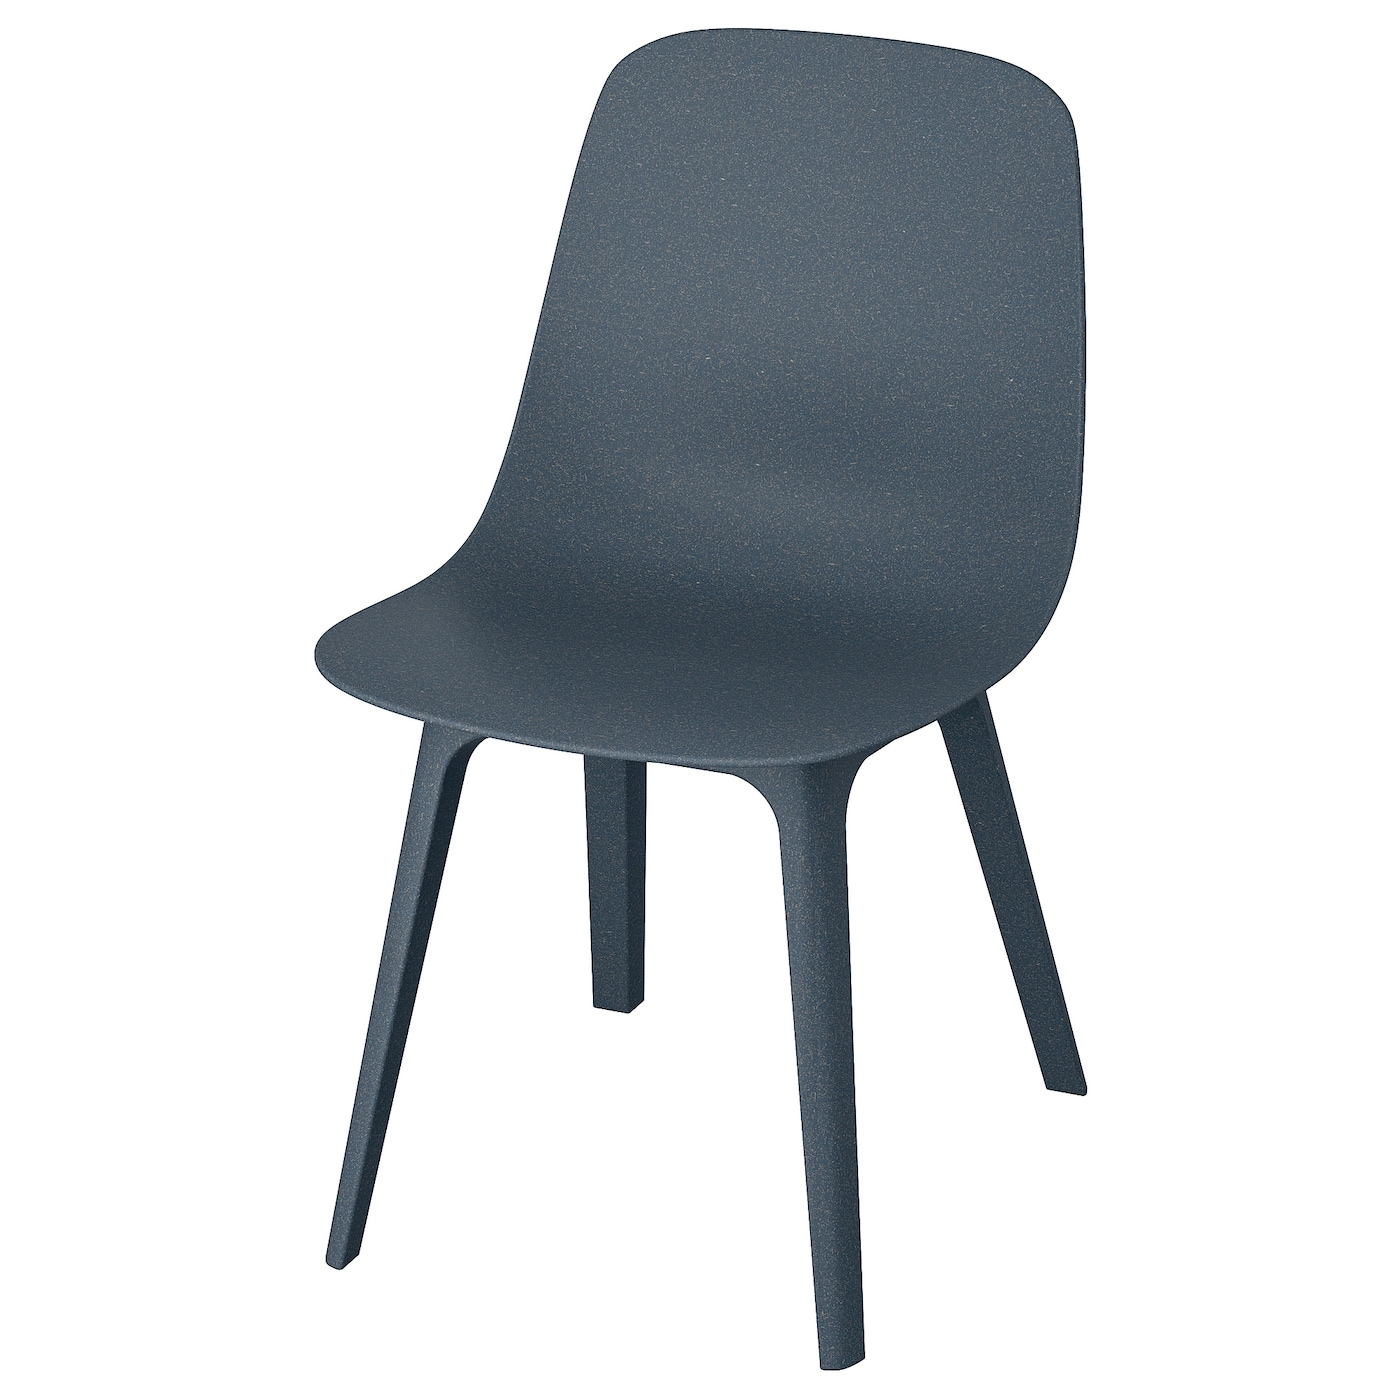 IKEA ODGER chair